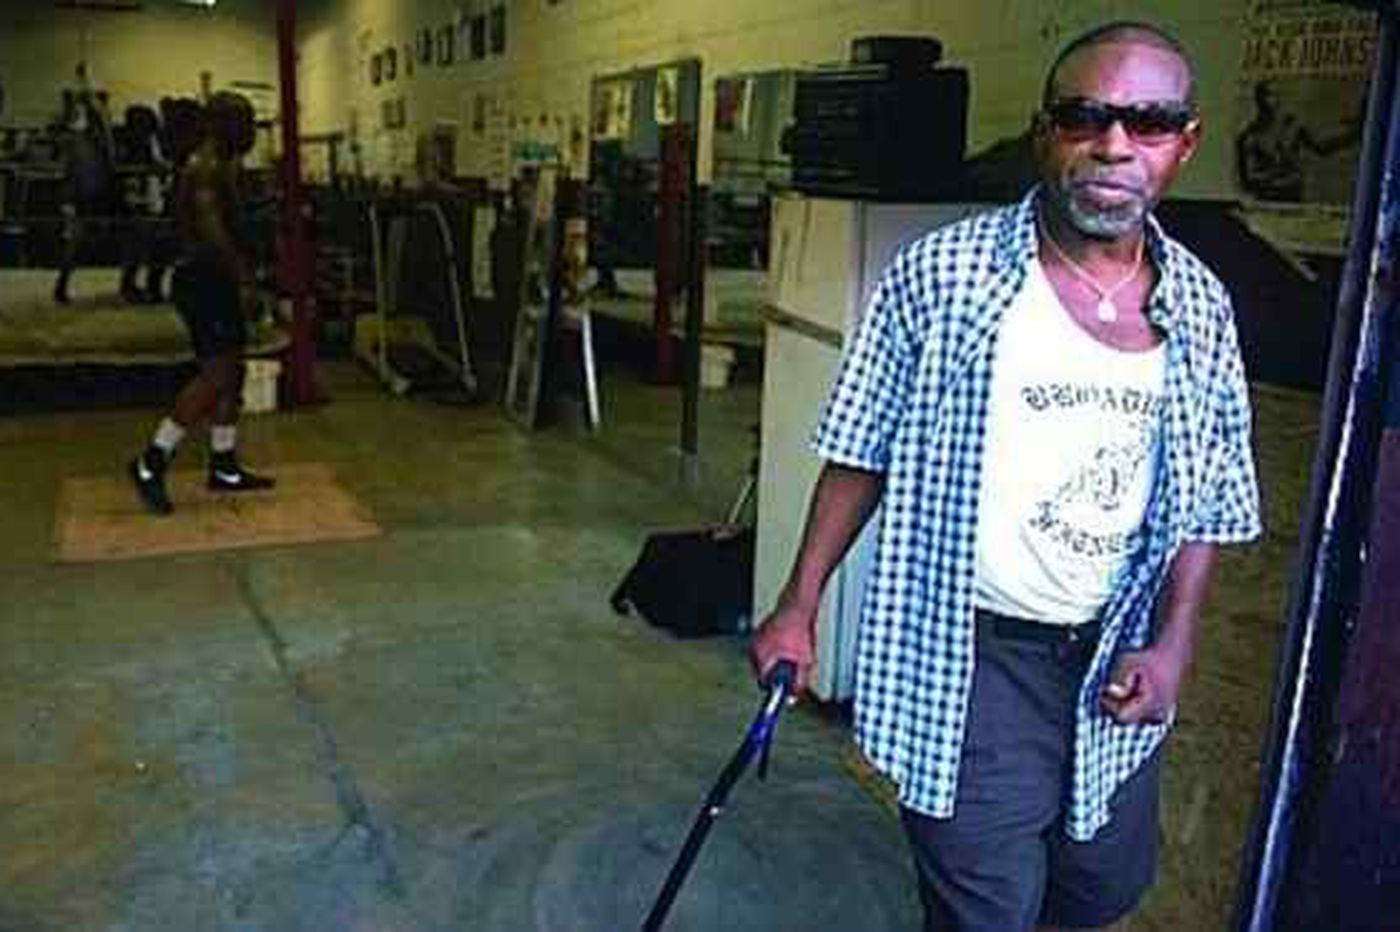 Former boxing champion Rocky Lockridge, 60